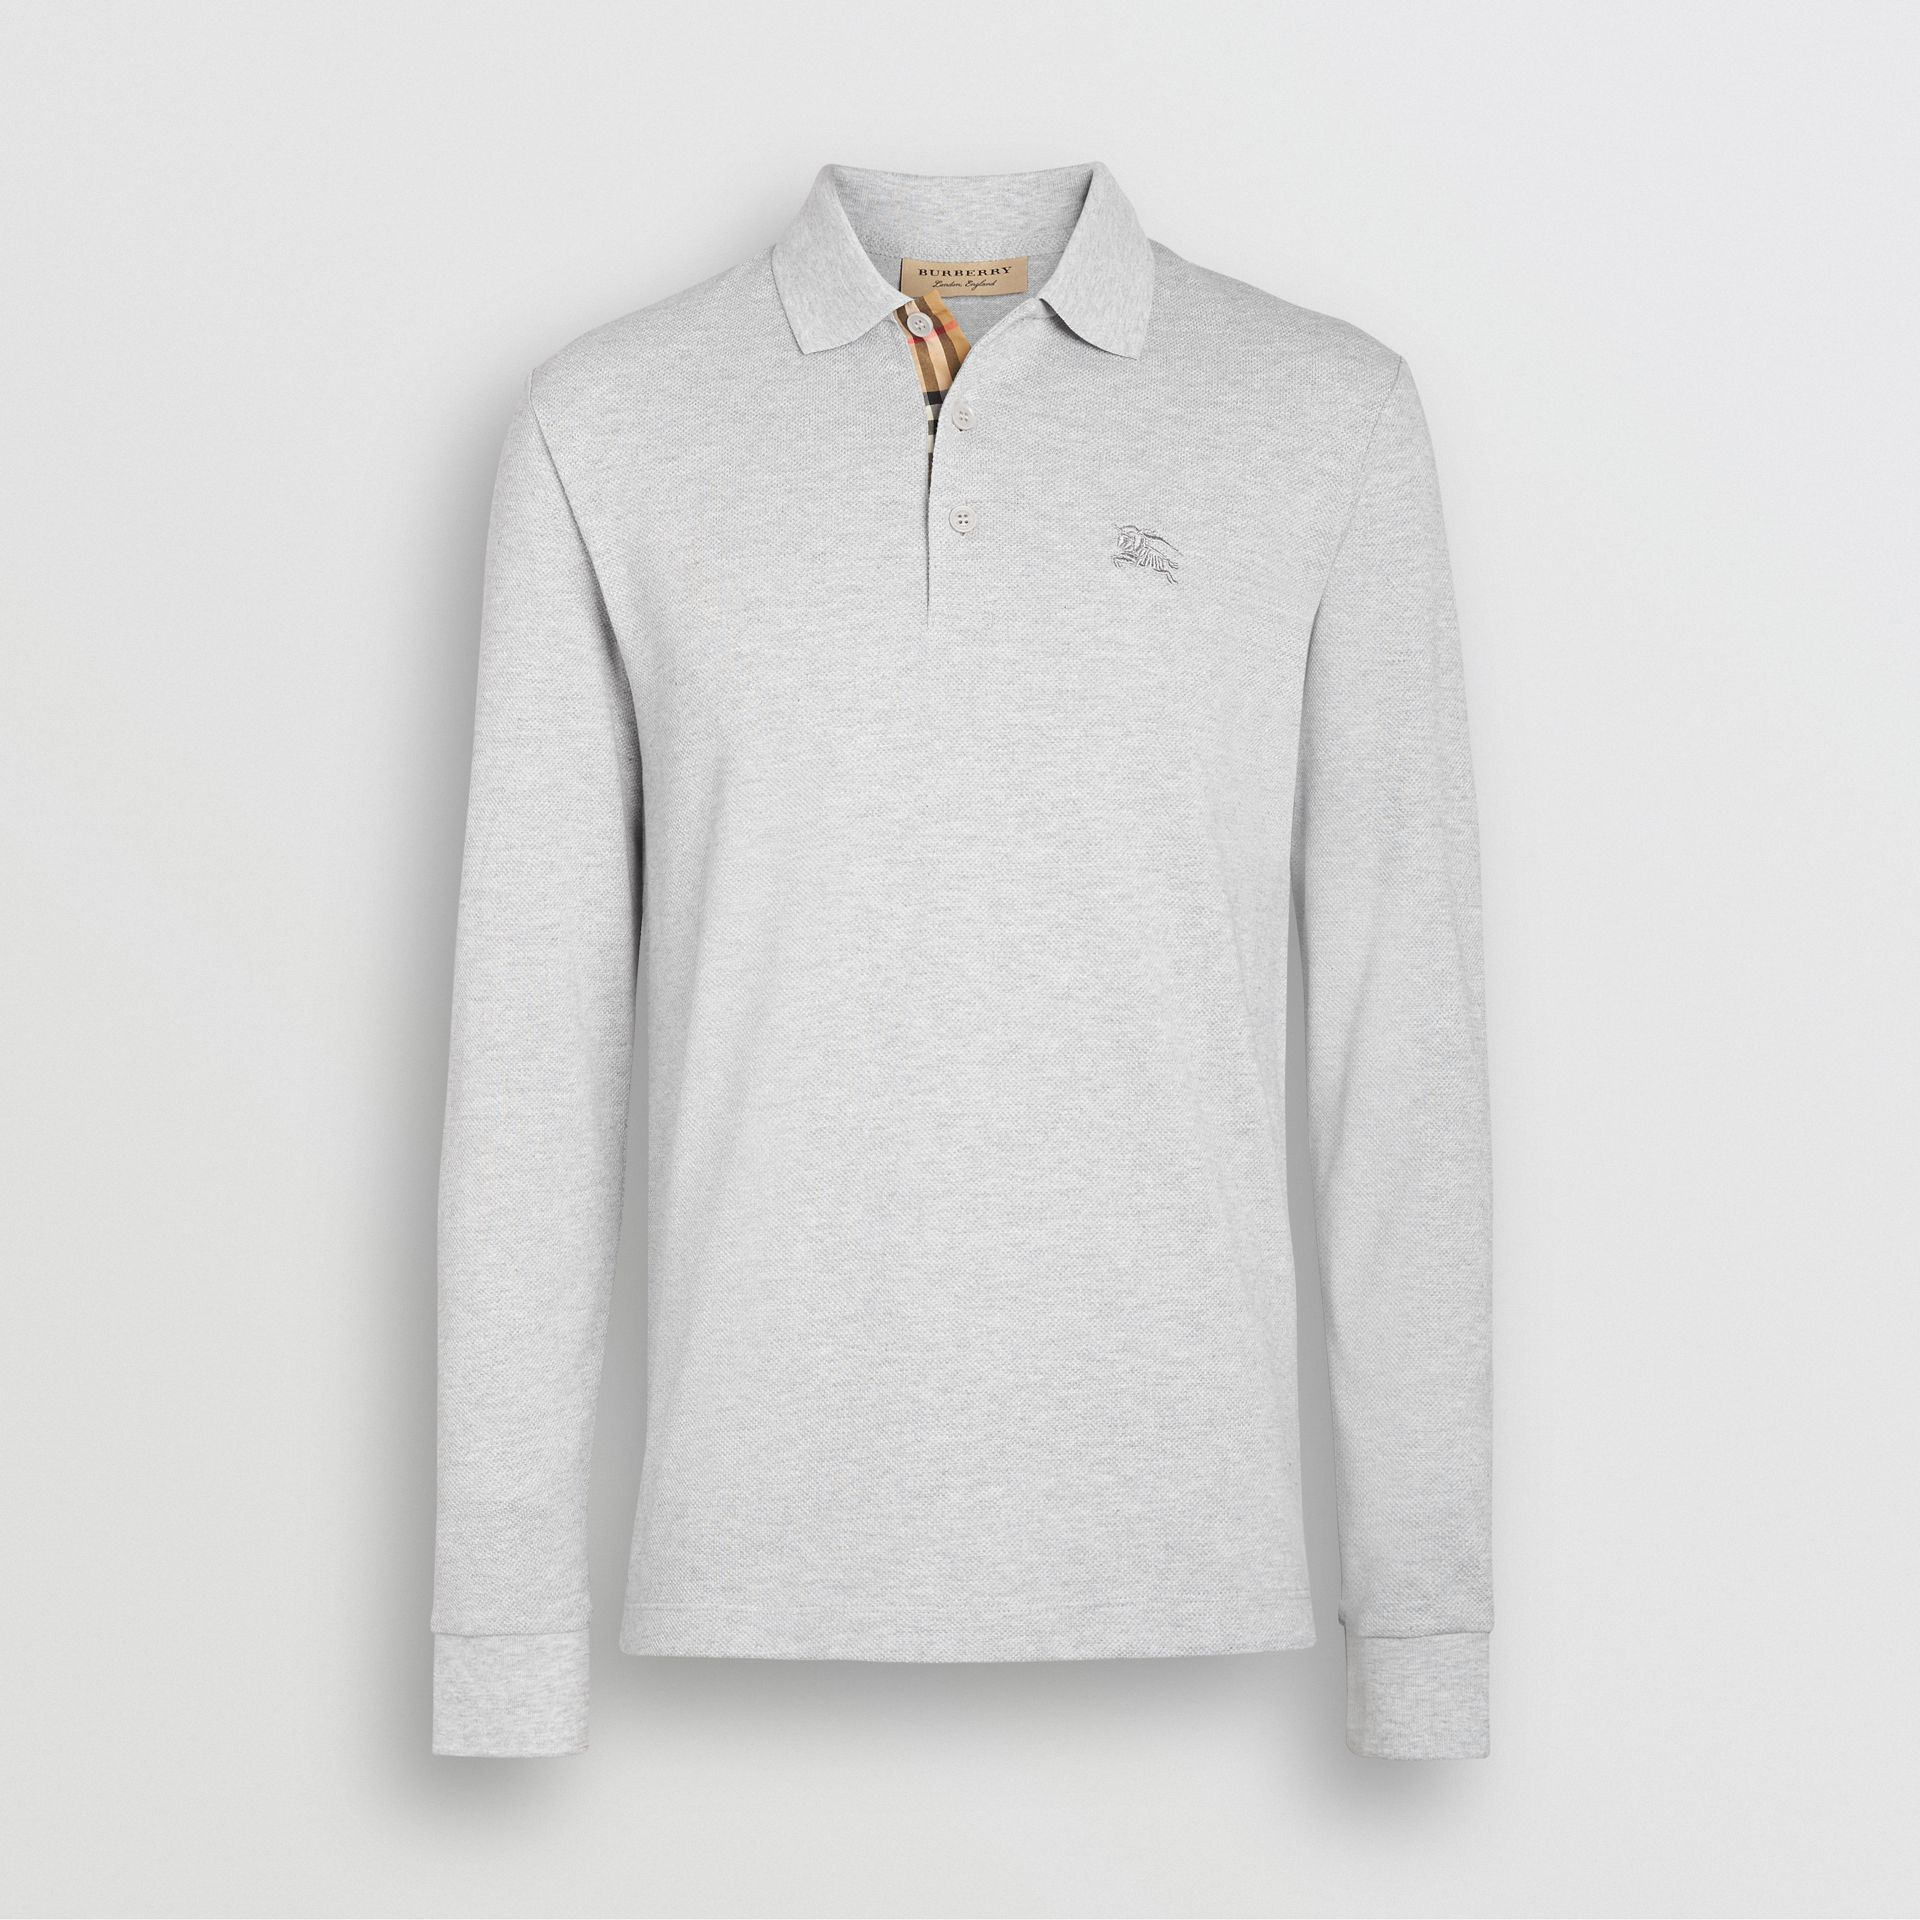 Long-sleeve Cotton Piqué Polo Shirt in Pale Grey Melange - Men | Burberry - gallery image 3